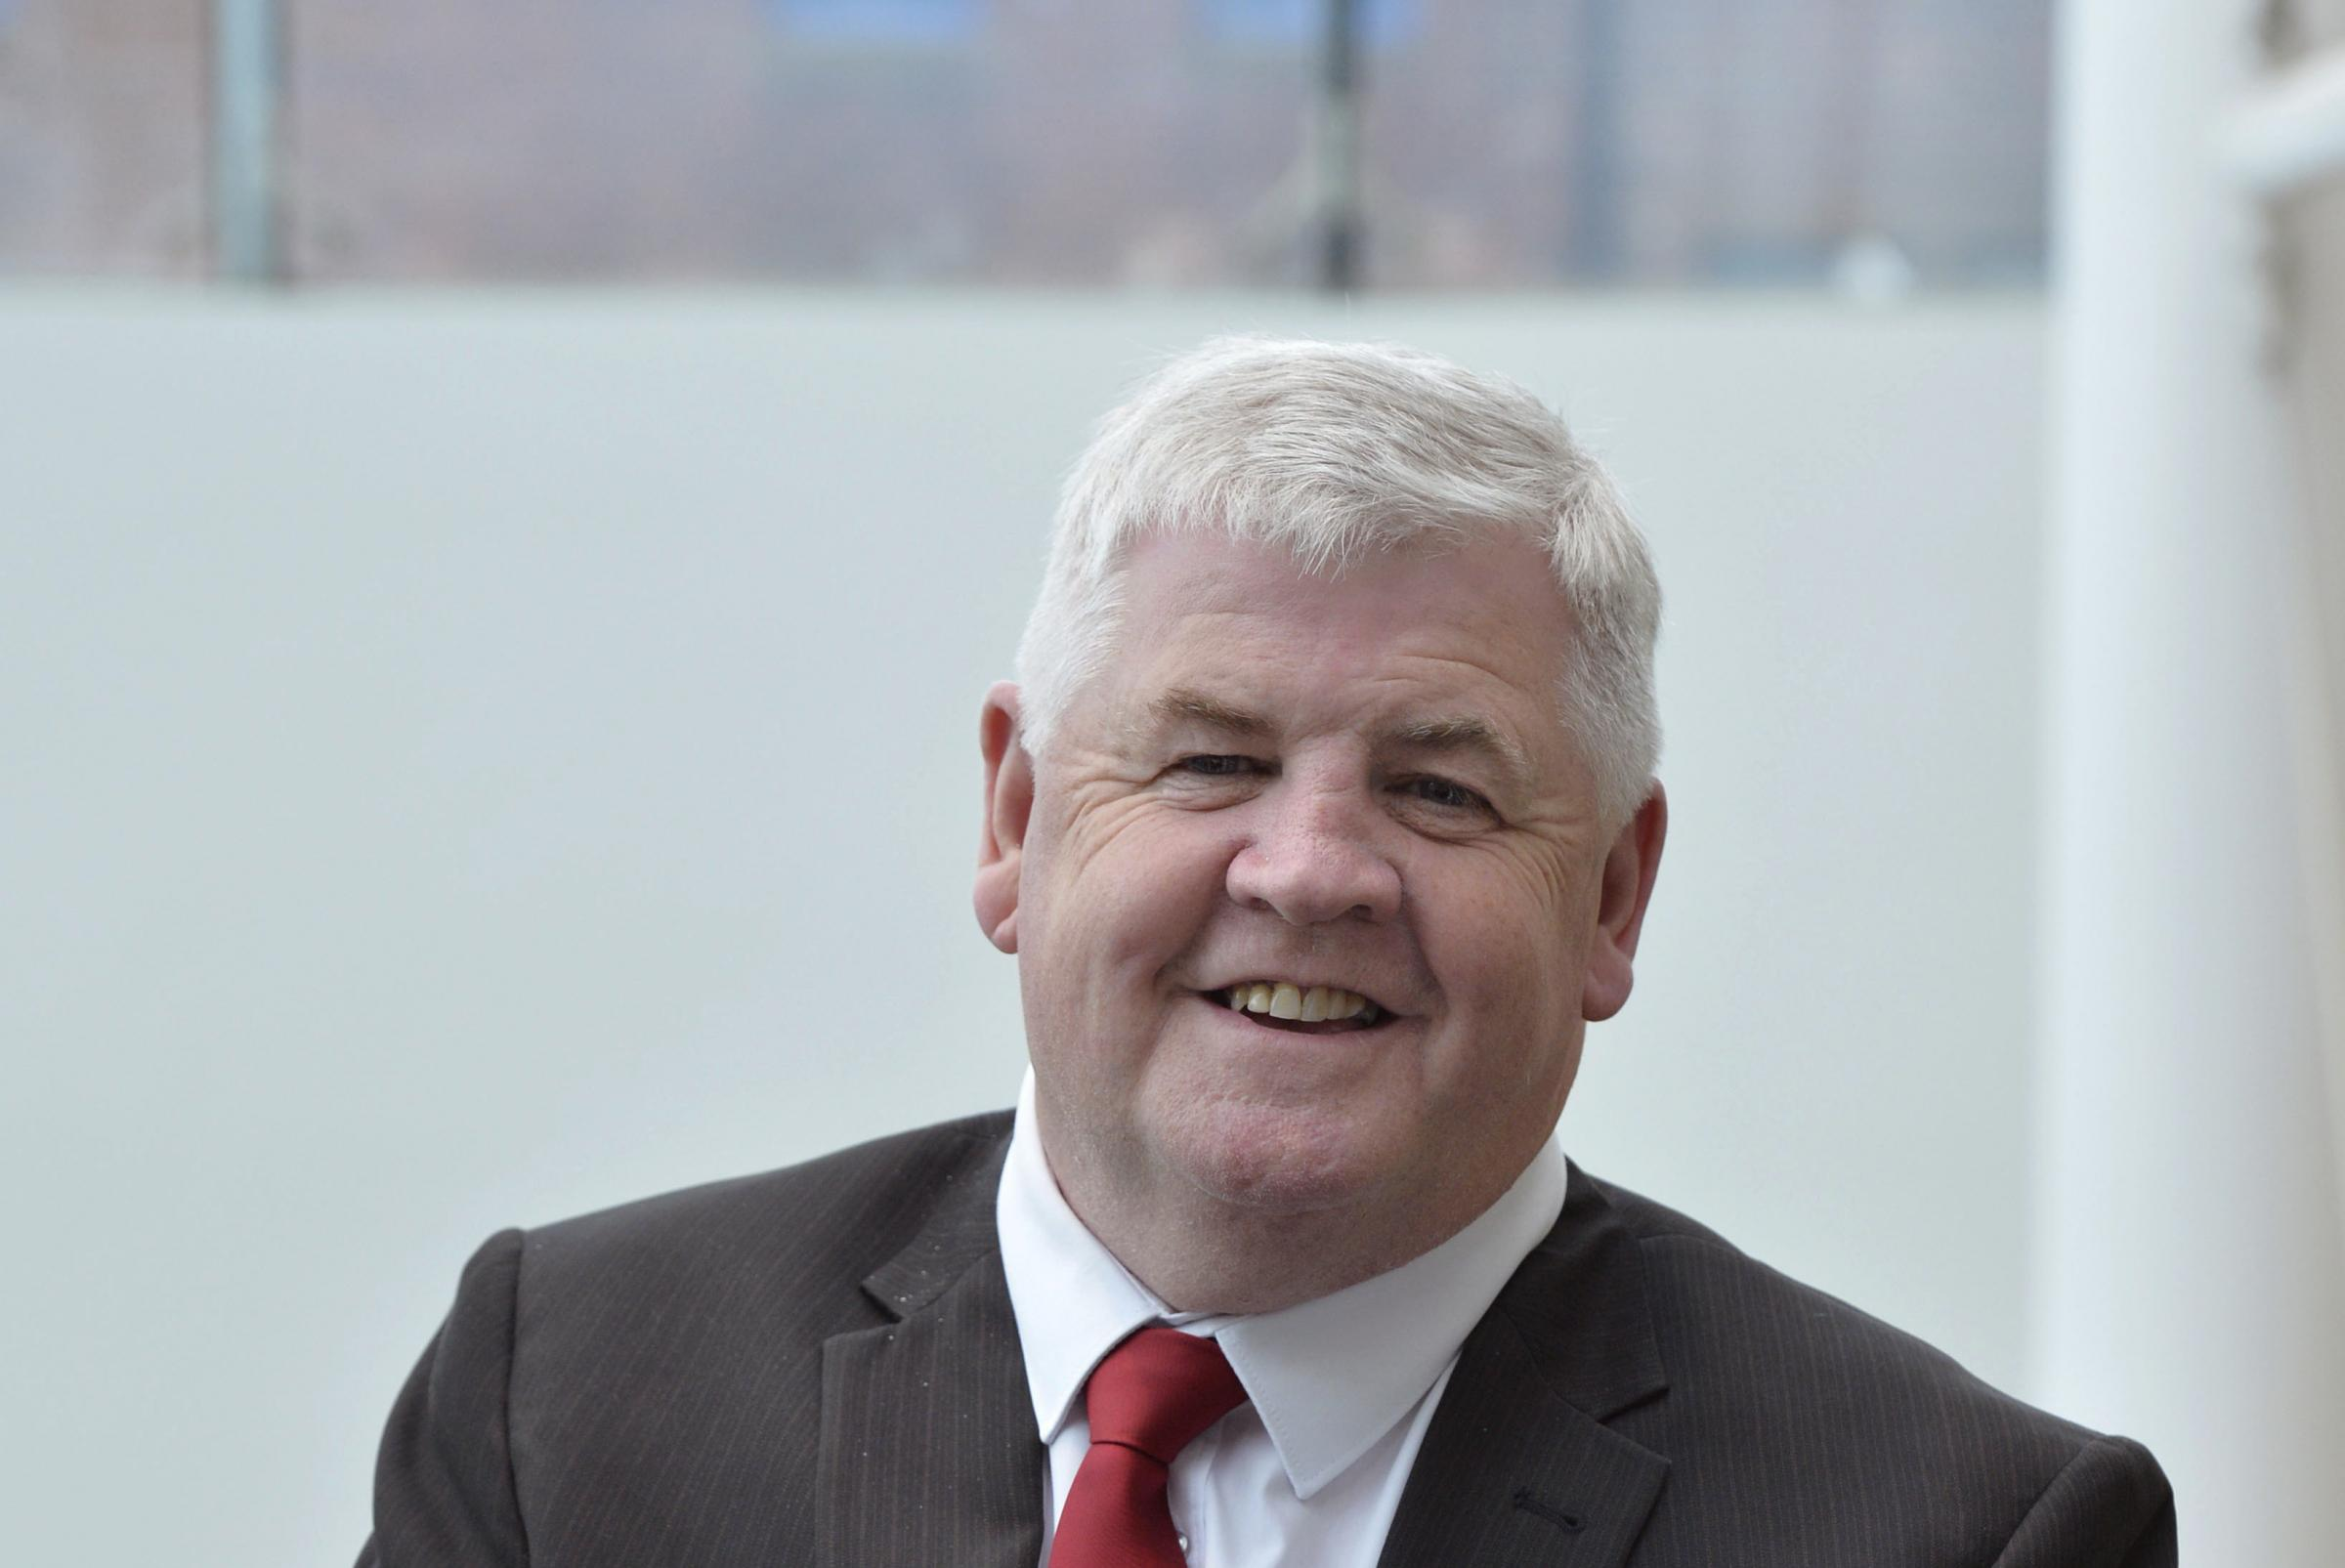 Hugh Gaffney has admitted using 'deeply offensive' language during a Burns Supper speech and has agreed to go to equality and diversity training